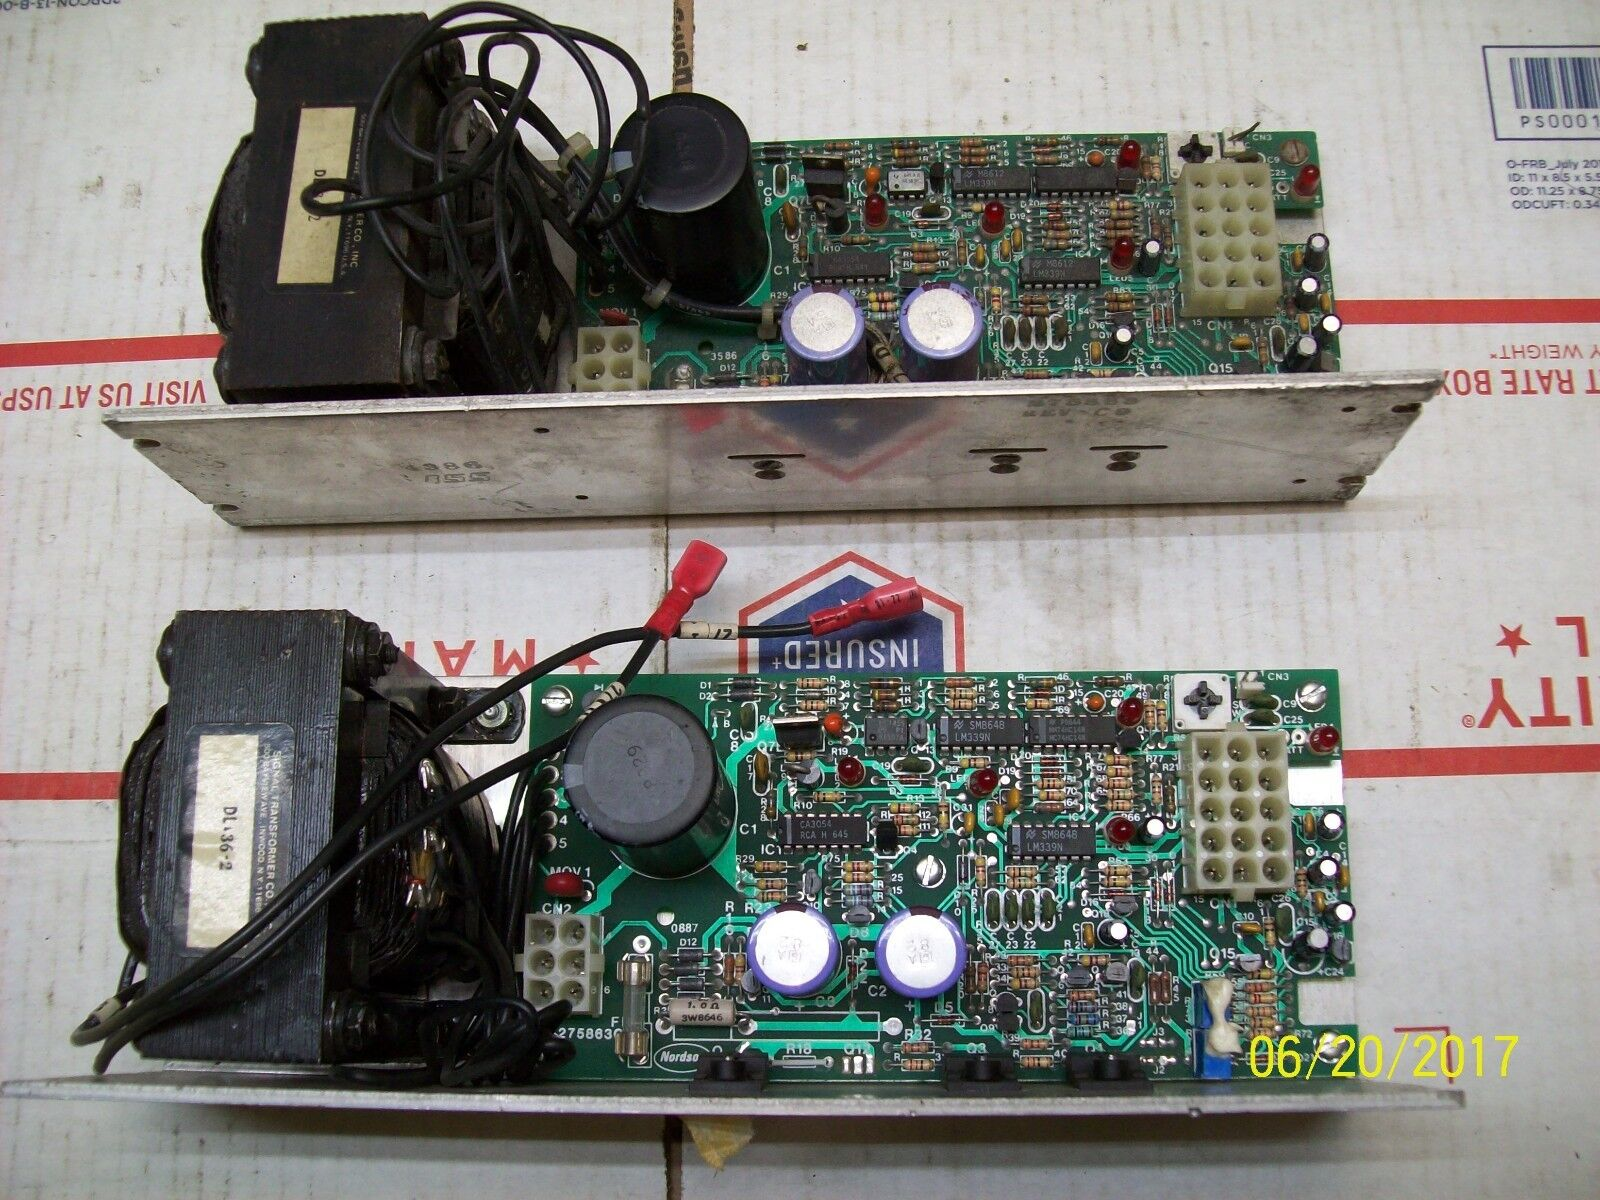 (1) NORDSON POWER SUPPLY CIRCUIT BOARD REV D7 , 275863C